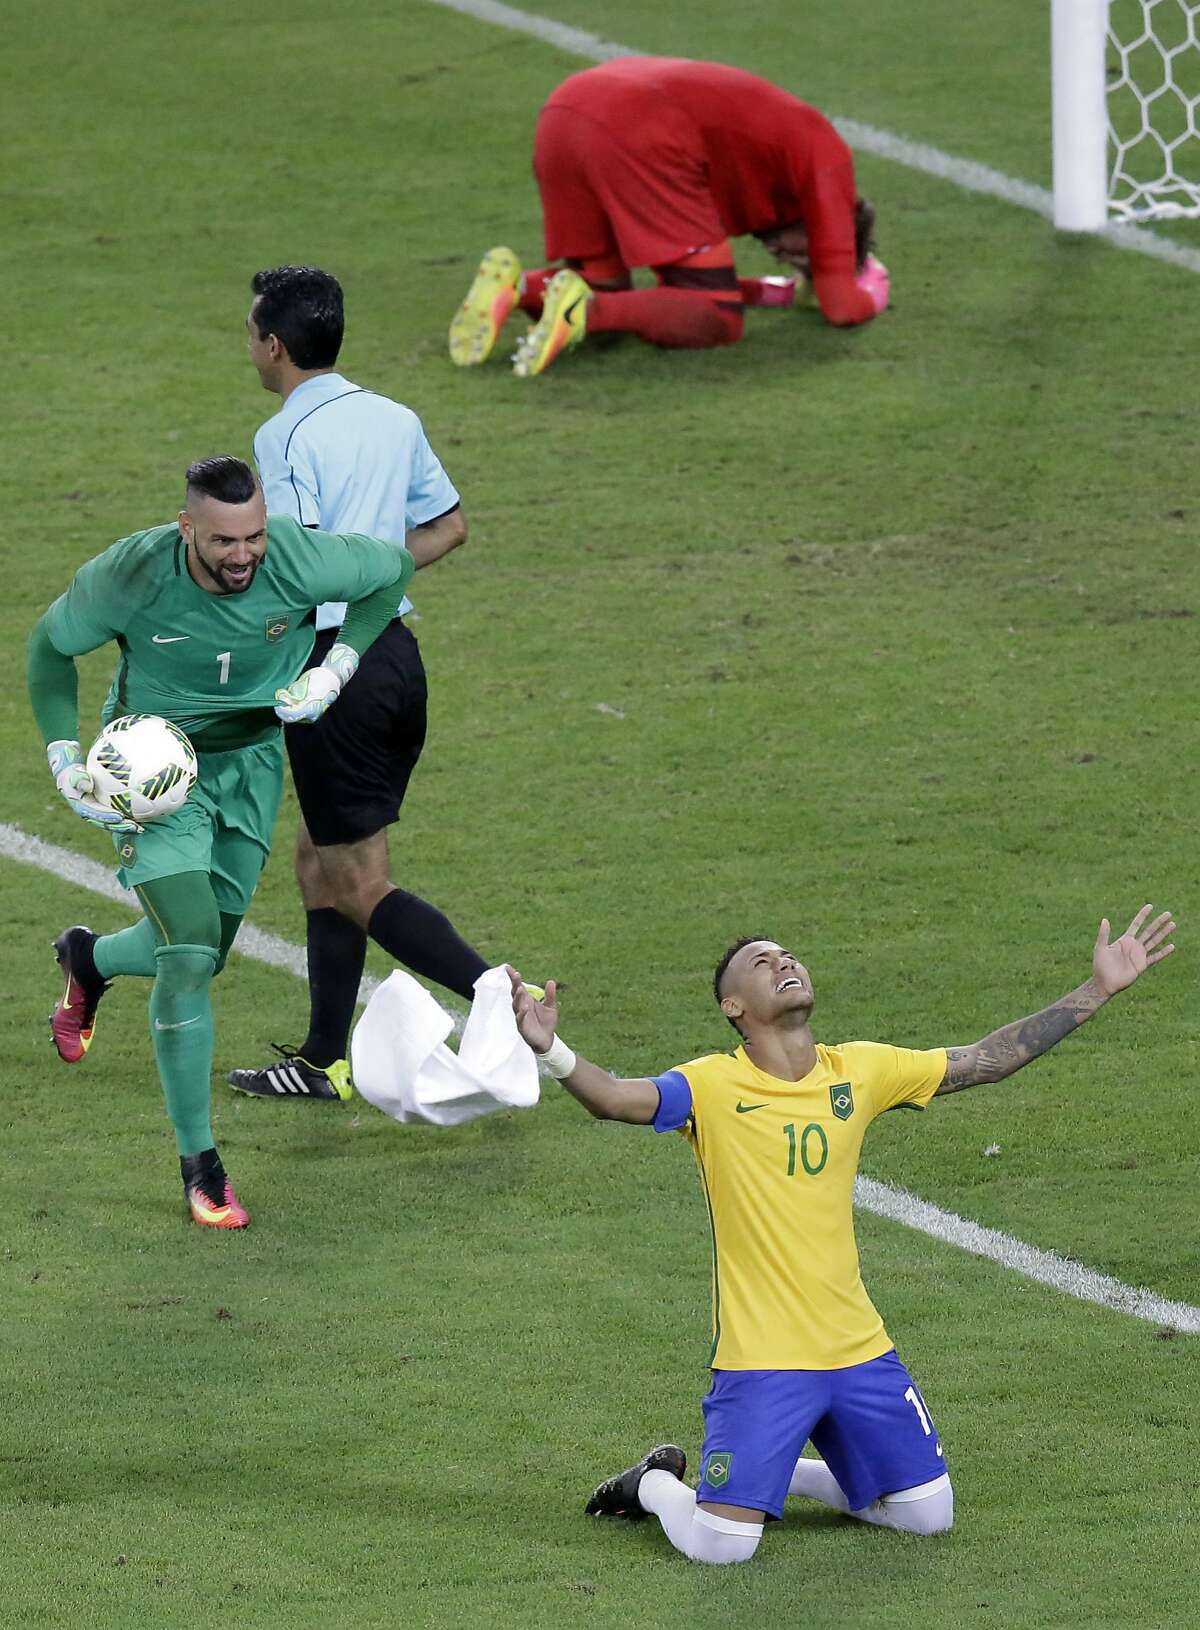 Brazi's Neymar celebrates with teammate goalkeeper Weverton, left, after scoring the decisive penalty kick during the final match of the mens's Olympic football tournament between Brazil and Germany at the Maracana stadium in Rio de Janeiro, Brazil, Saturday Aug. 20, 2016. Brazil won the gold medal on penalty shoot-out.(AP Photo/Luca Bruno)